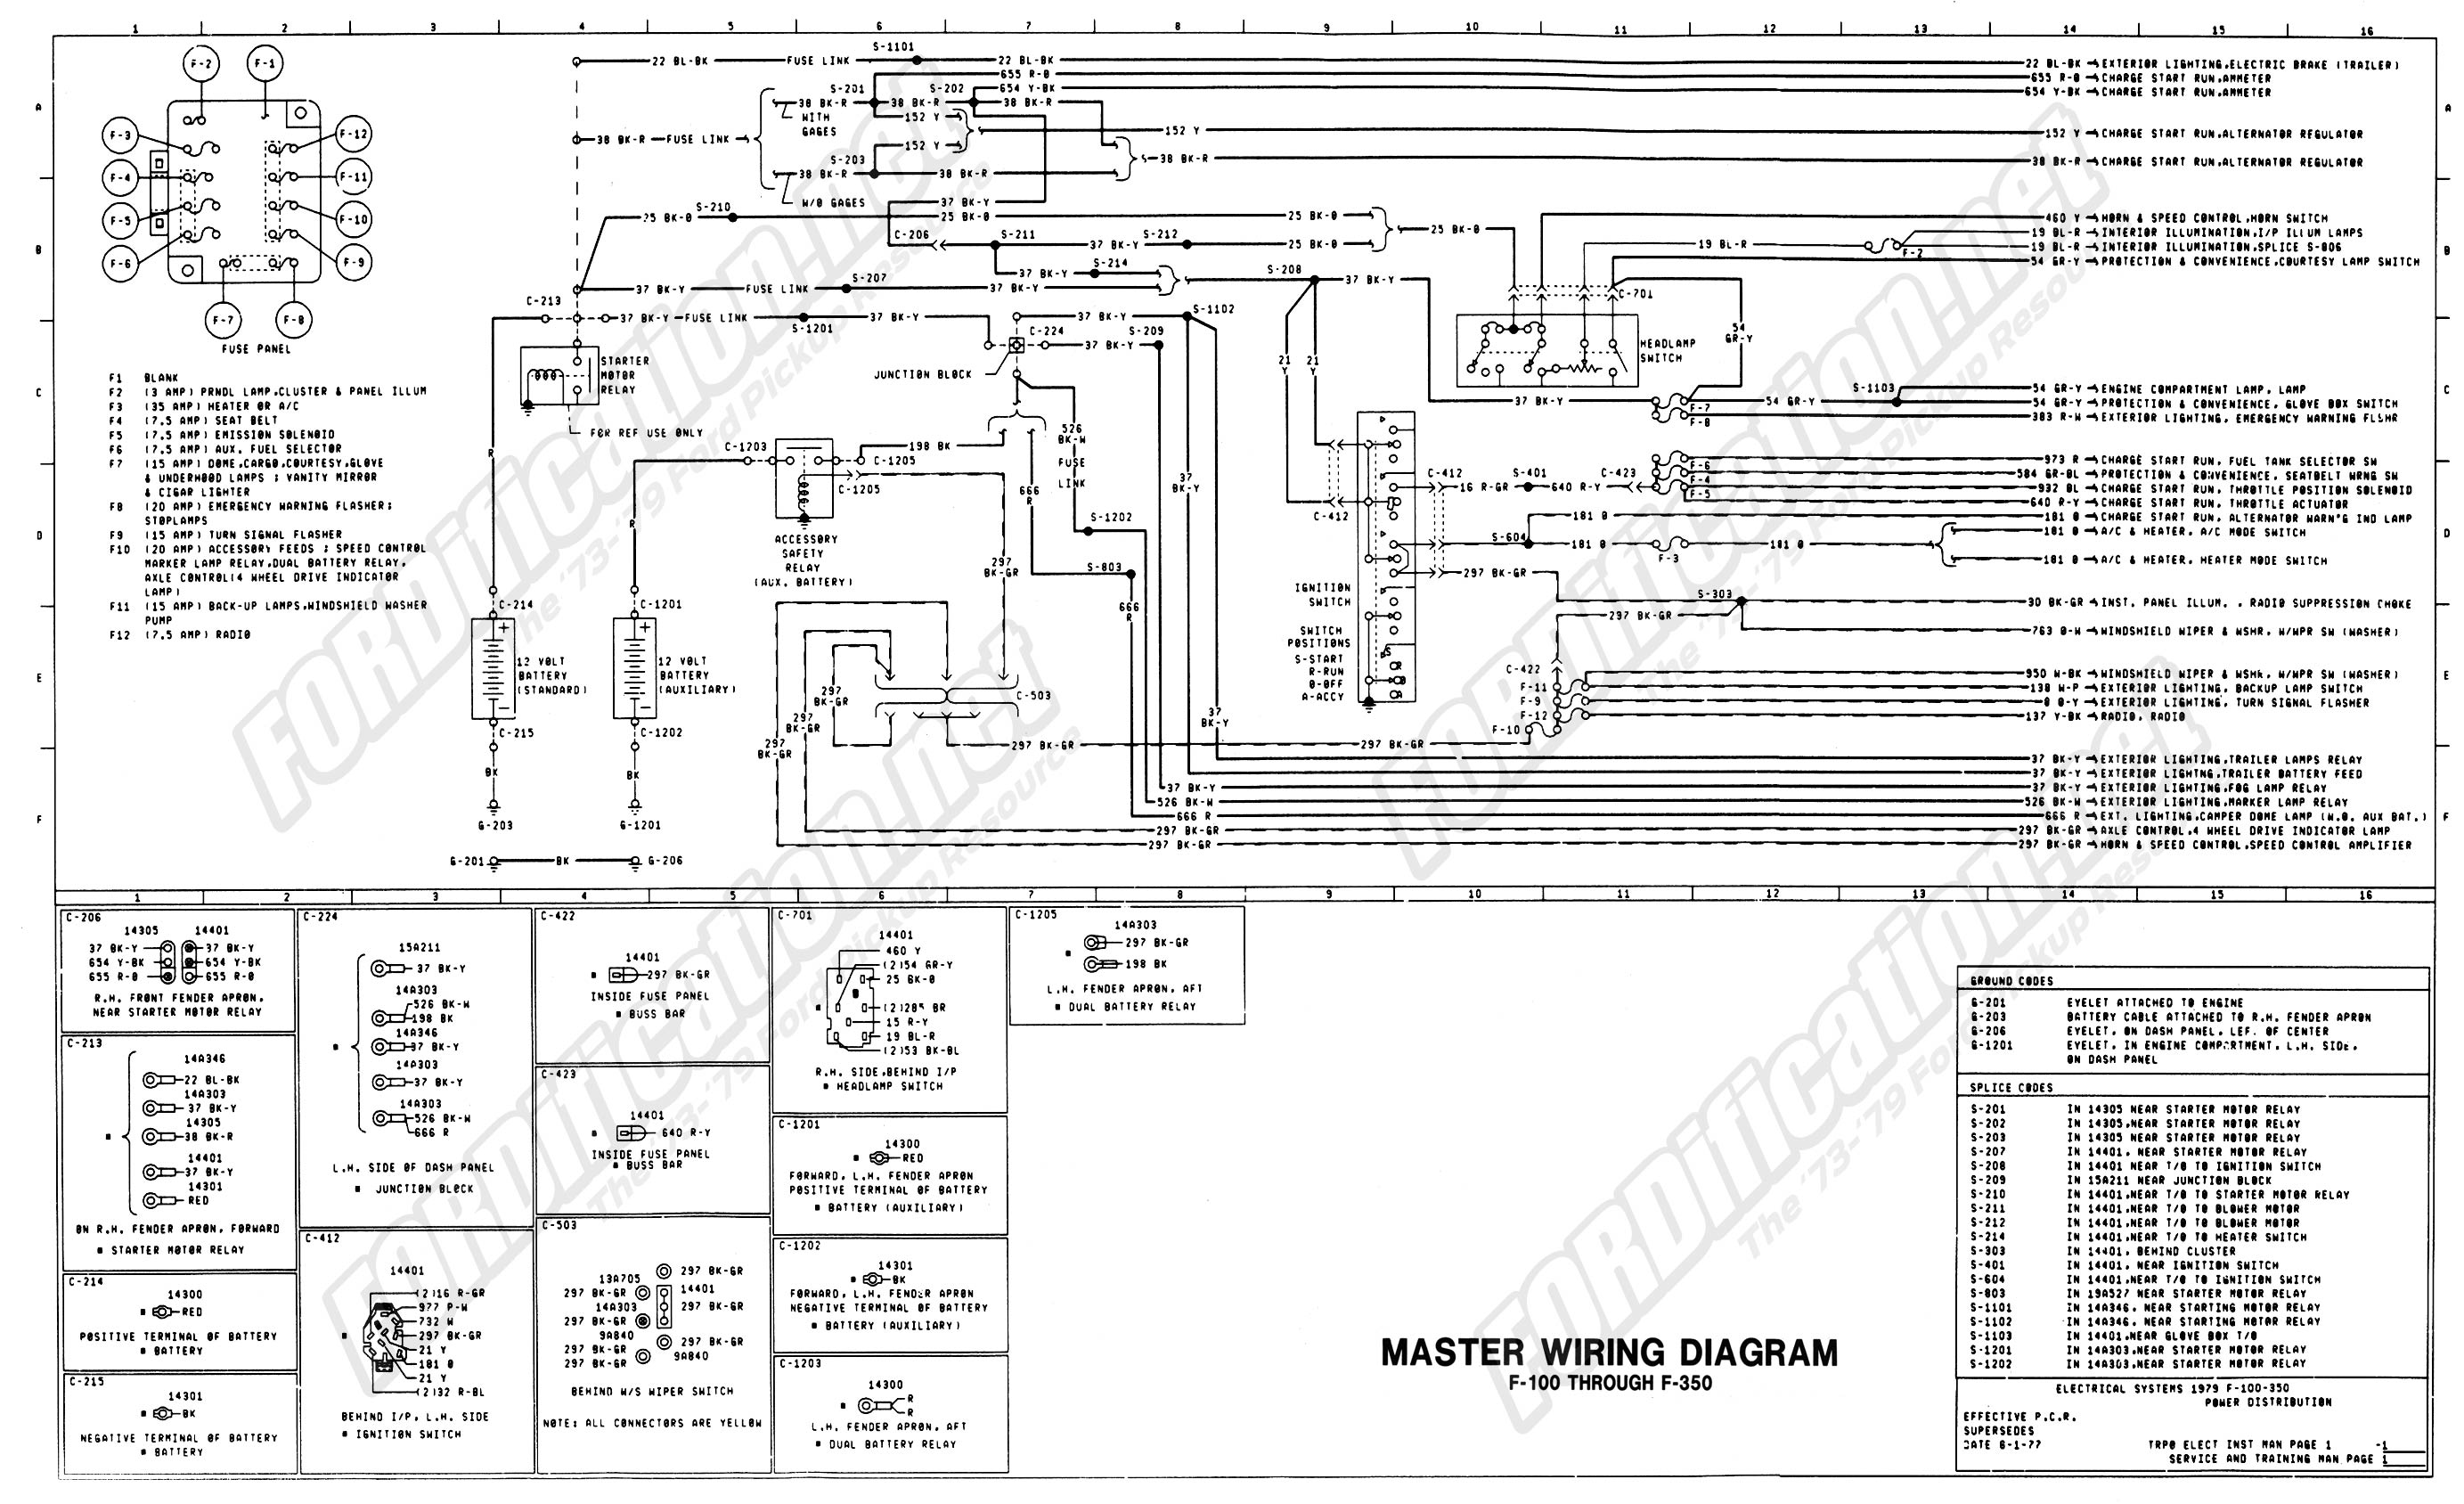 1973 1979 Ford Truck Wiring Diagrams & Schematics Fordification Net Ford  Truck Wiring Schematics 1977 Ford Truck Tail Light Wiring